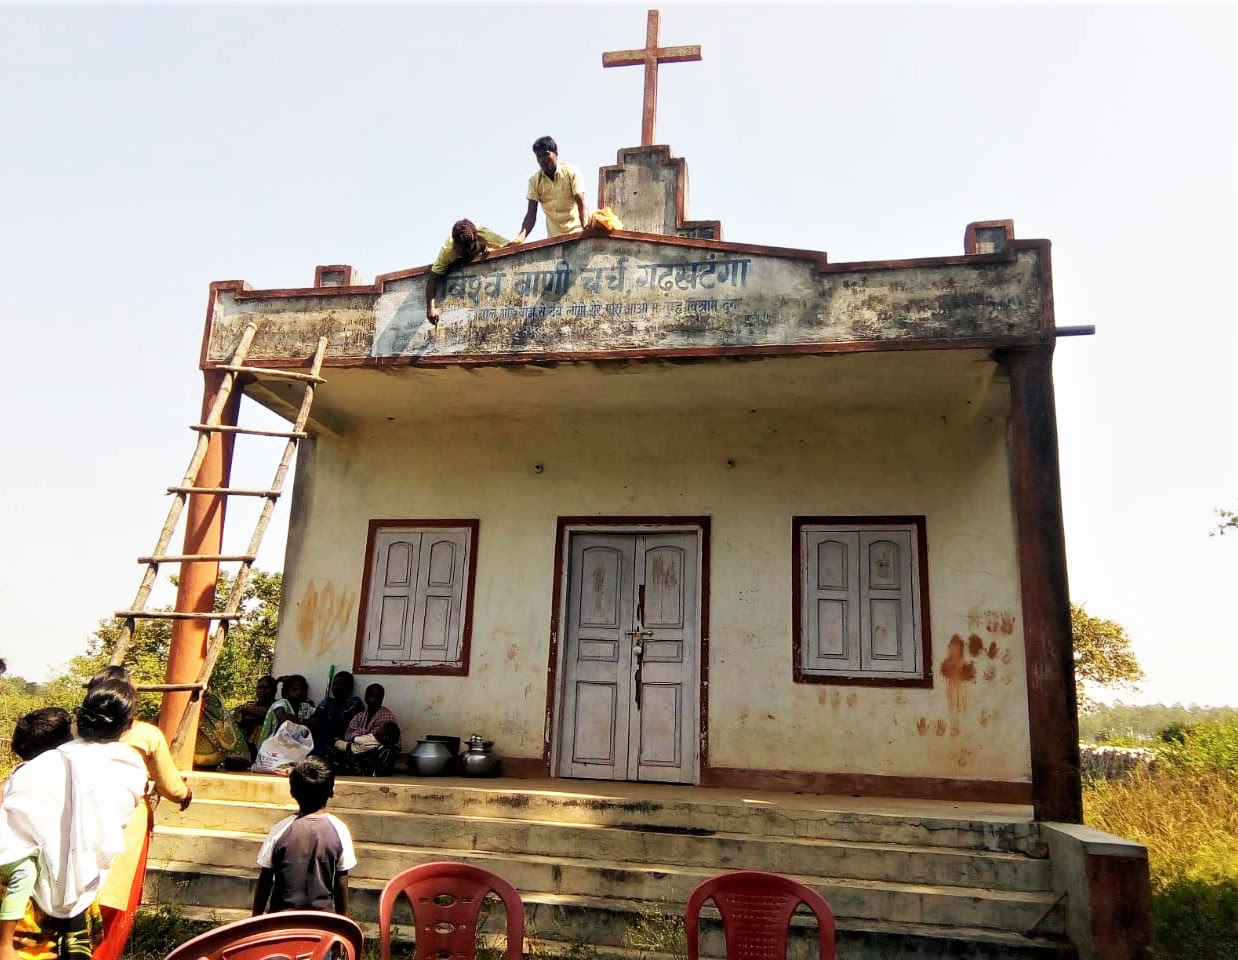 Hindu extremists and tribal animists team up to transform church building into Sarna religion complex in Ranchi District, Jharkhand state, India. (Morning Star News)